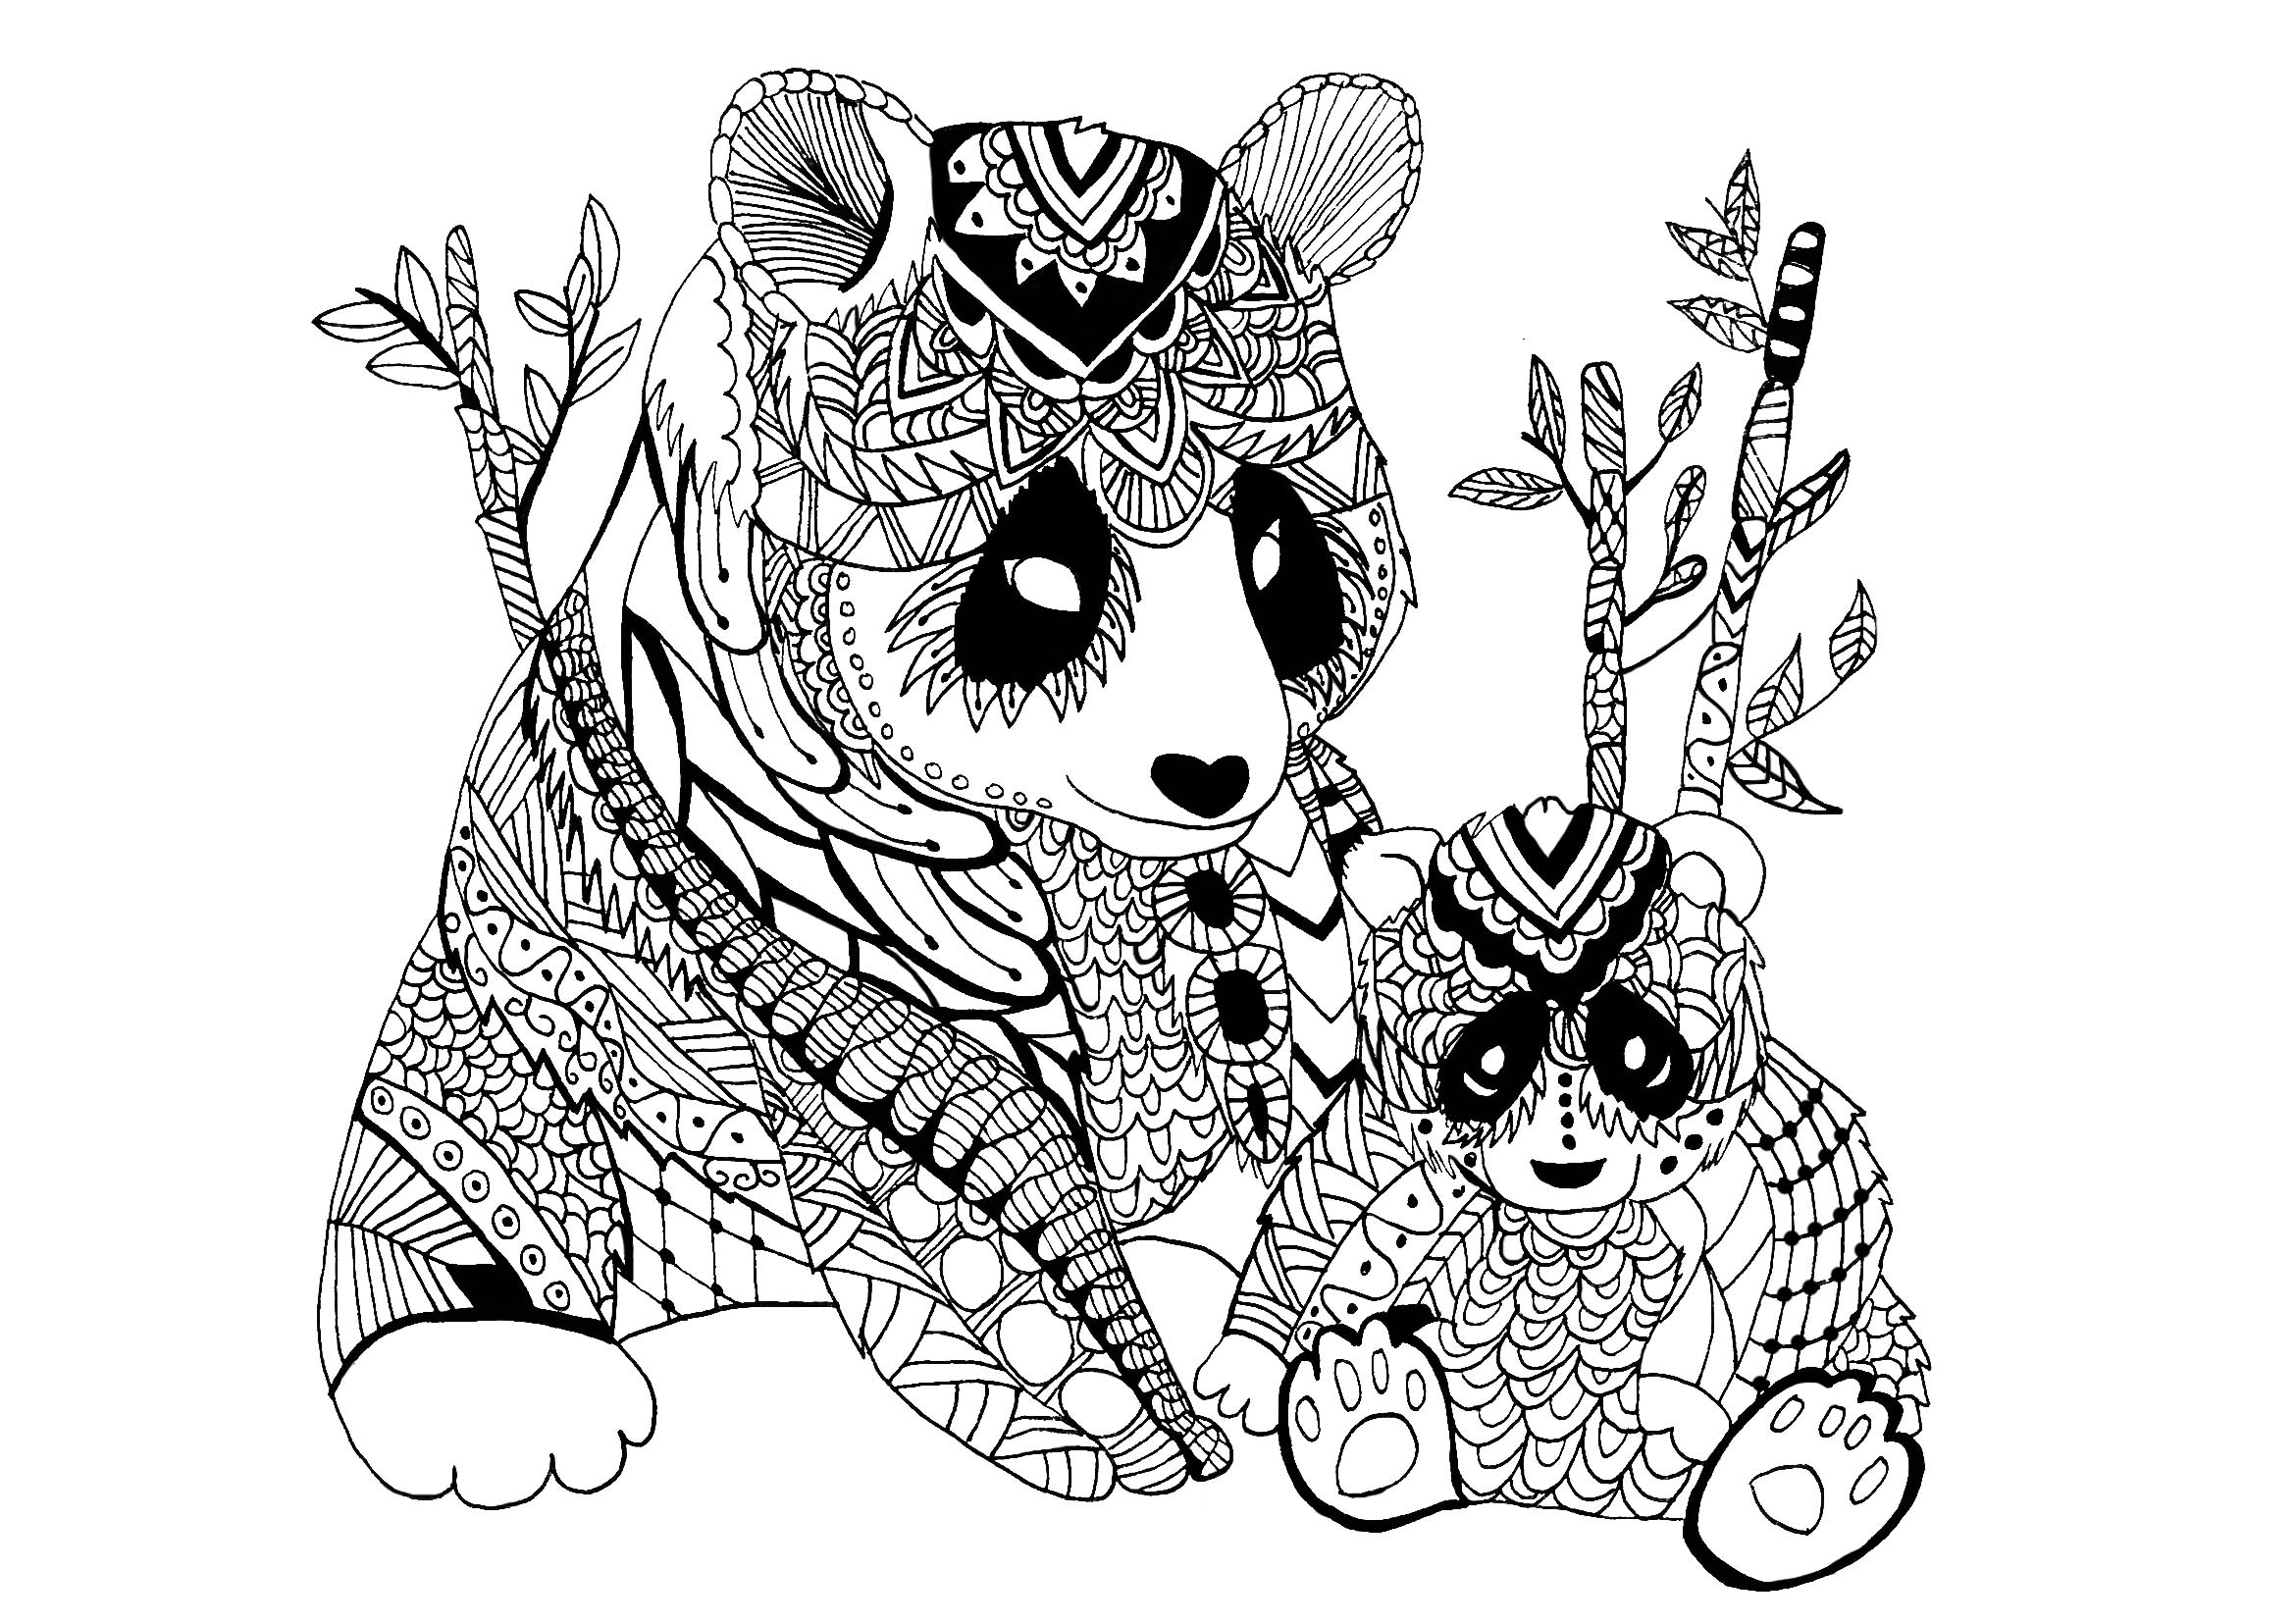 free zentangle coloring pages turtle zentangle coloring page free printable coloring pages zentangle coloring pages free